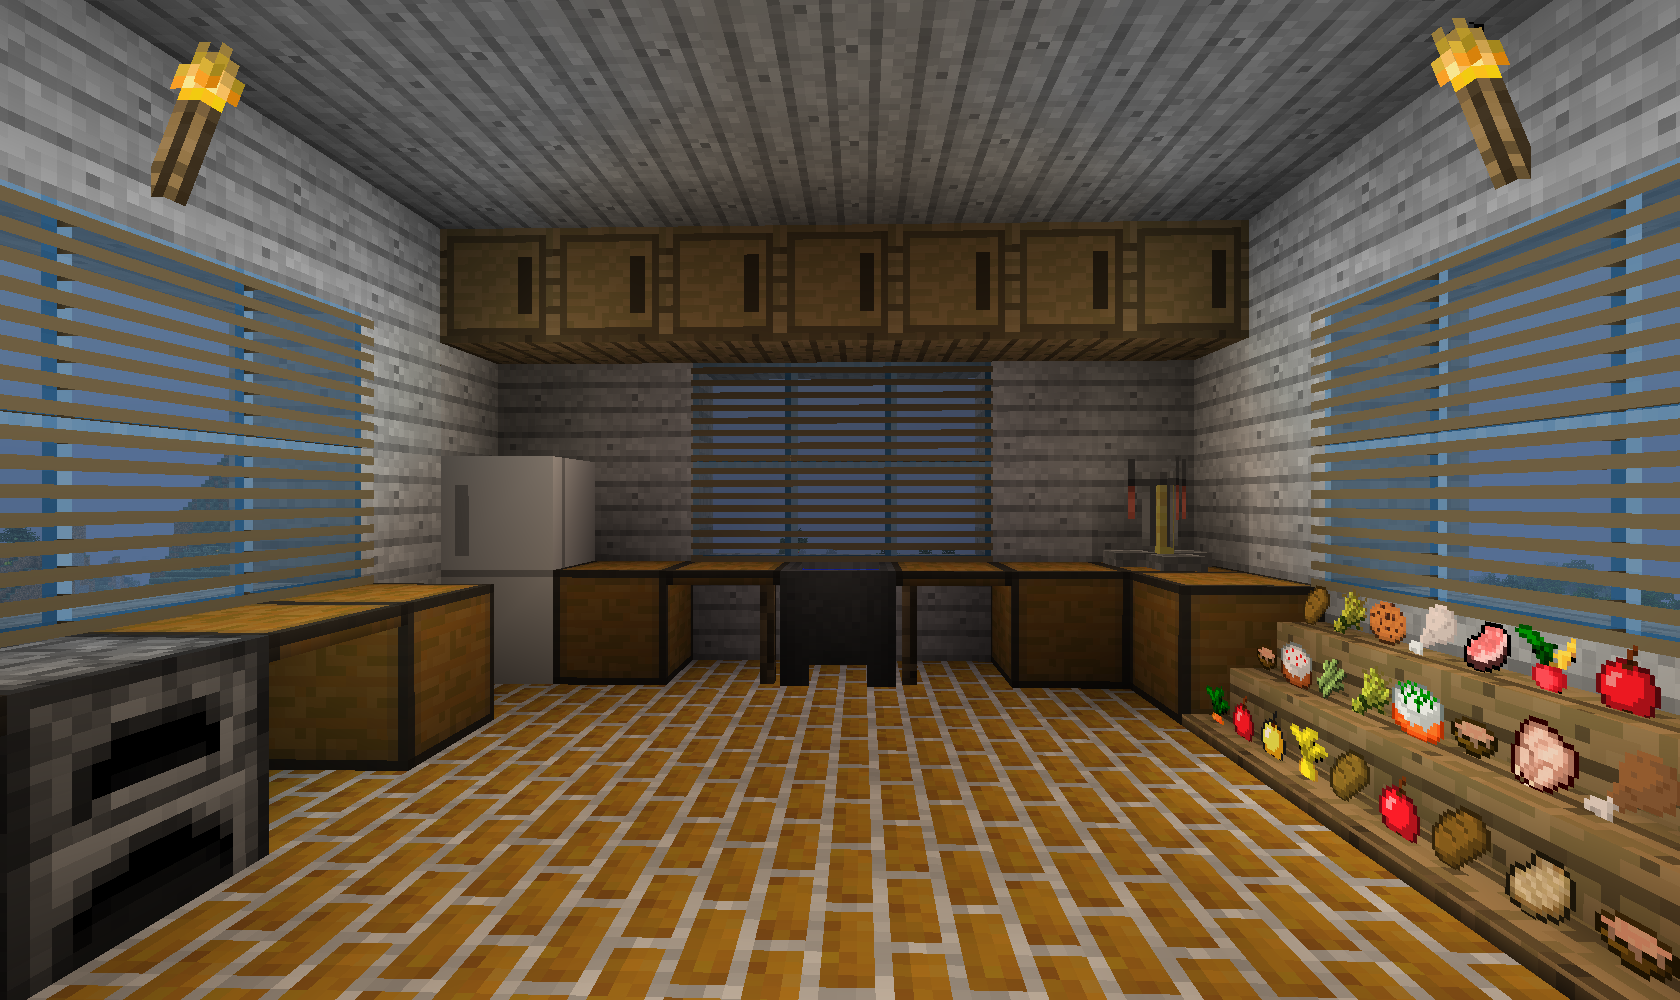 minecraft interior design kitchen minecraft kitchen only will use item frames for the food 7507